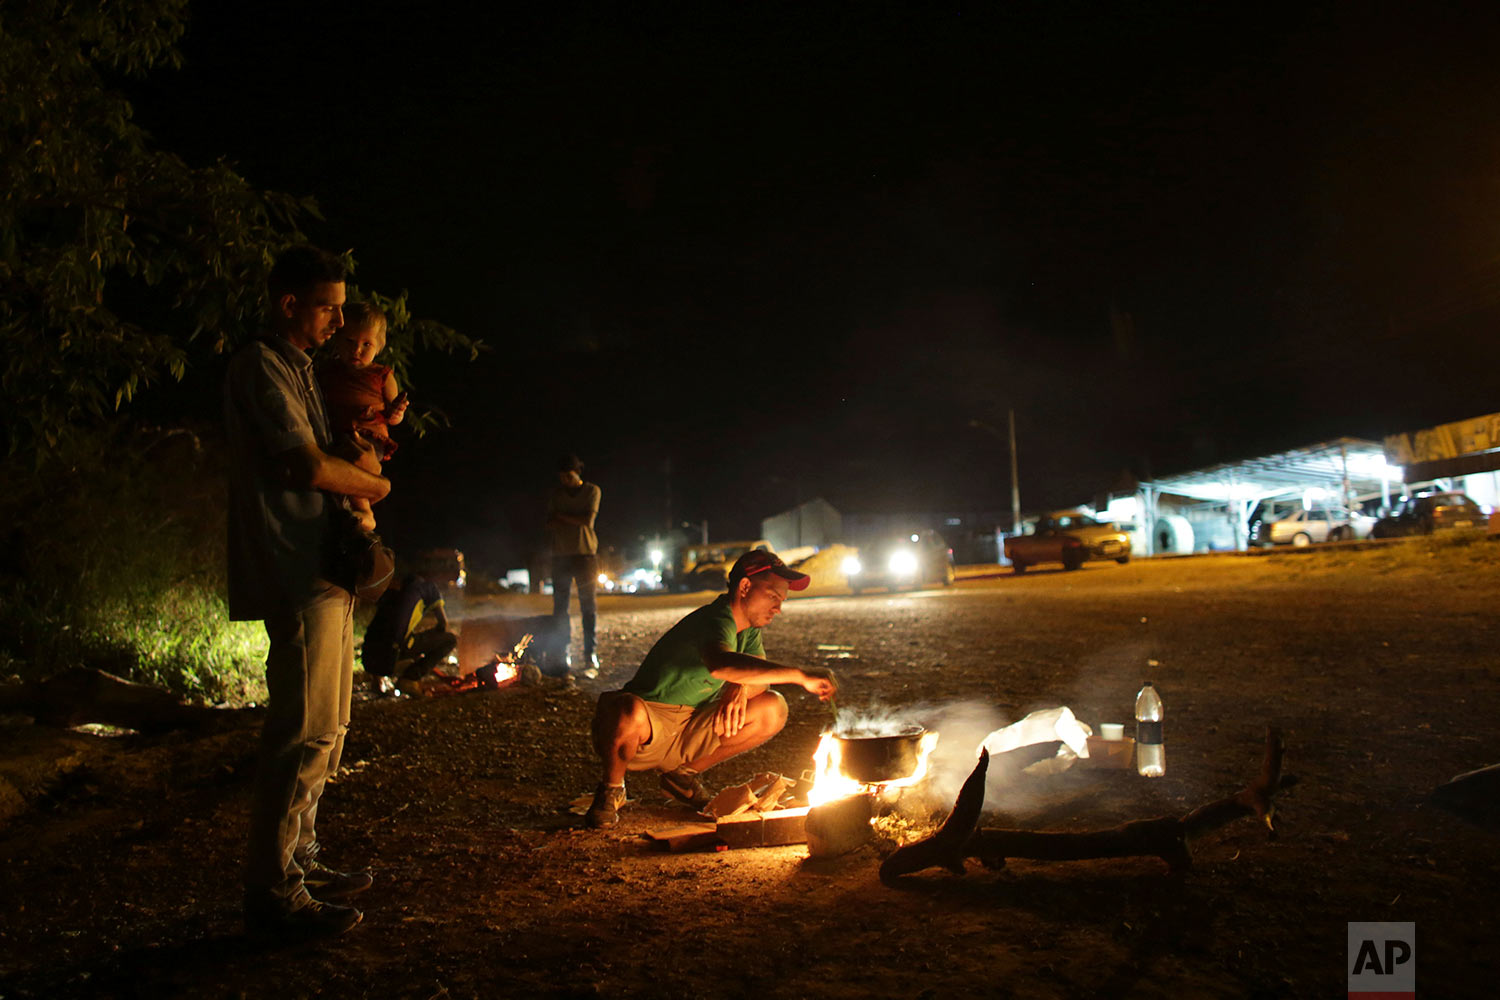 Venezuelans cook food on the side of Highway BR 147 after crossing the Venezuela-Brazil border in Pacaraima, Roraima state, Brazil,March 9, 2018.(AP Photo/Eraldo Peres)